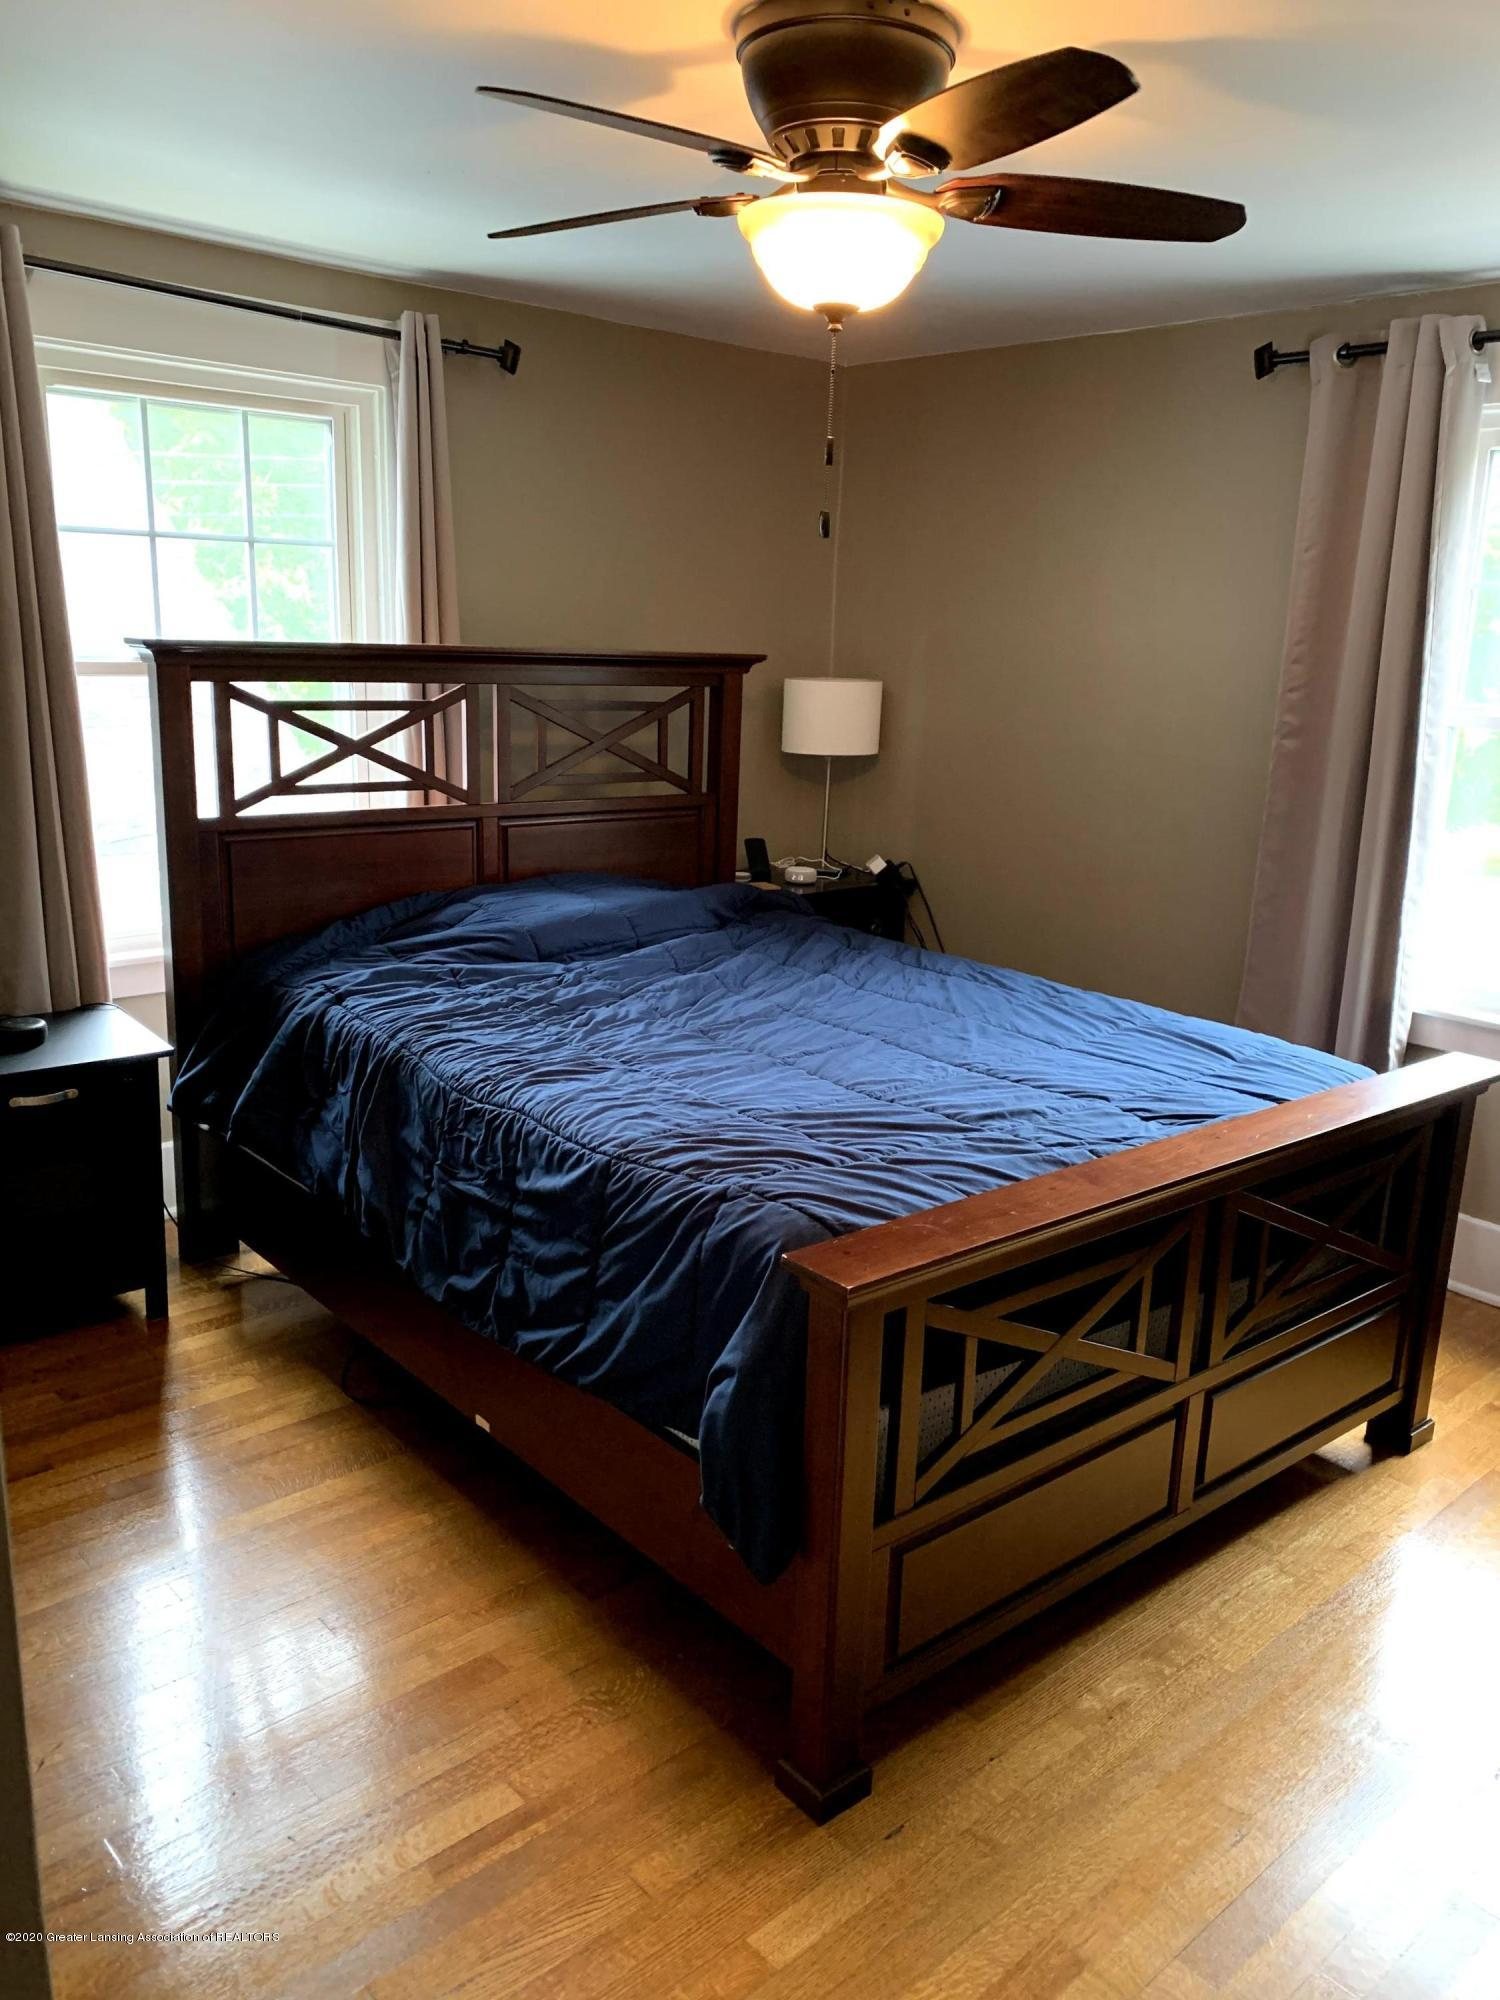 523 N Jenison Ave - Bedroom - 21